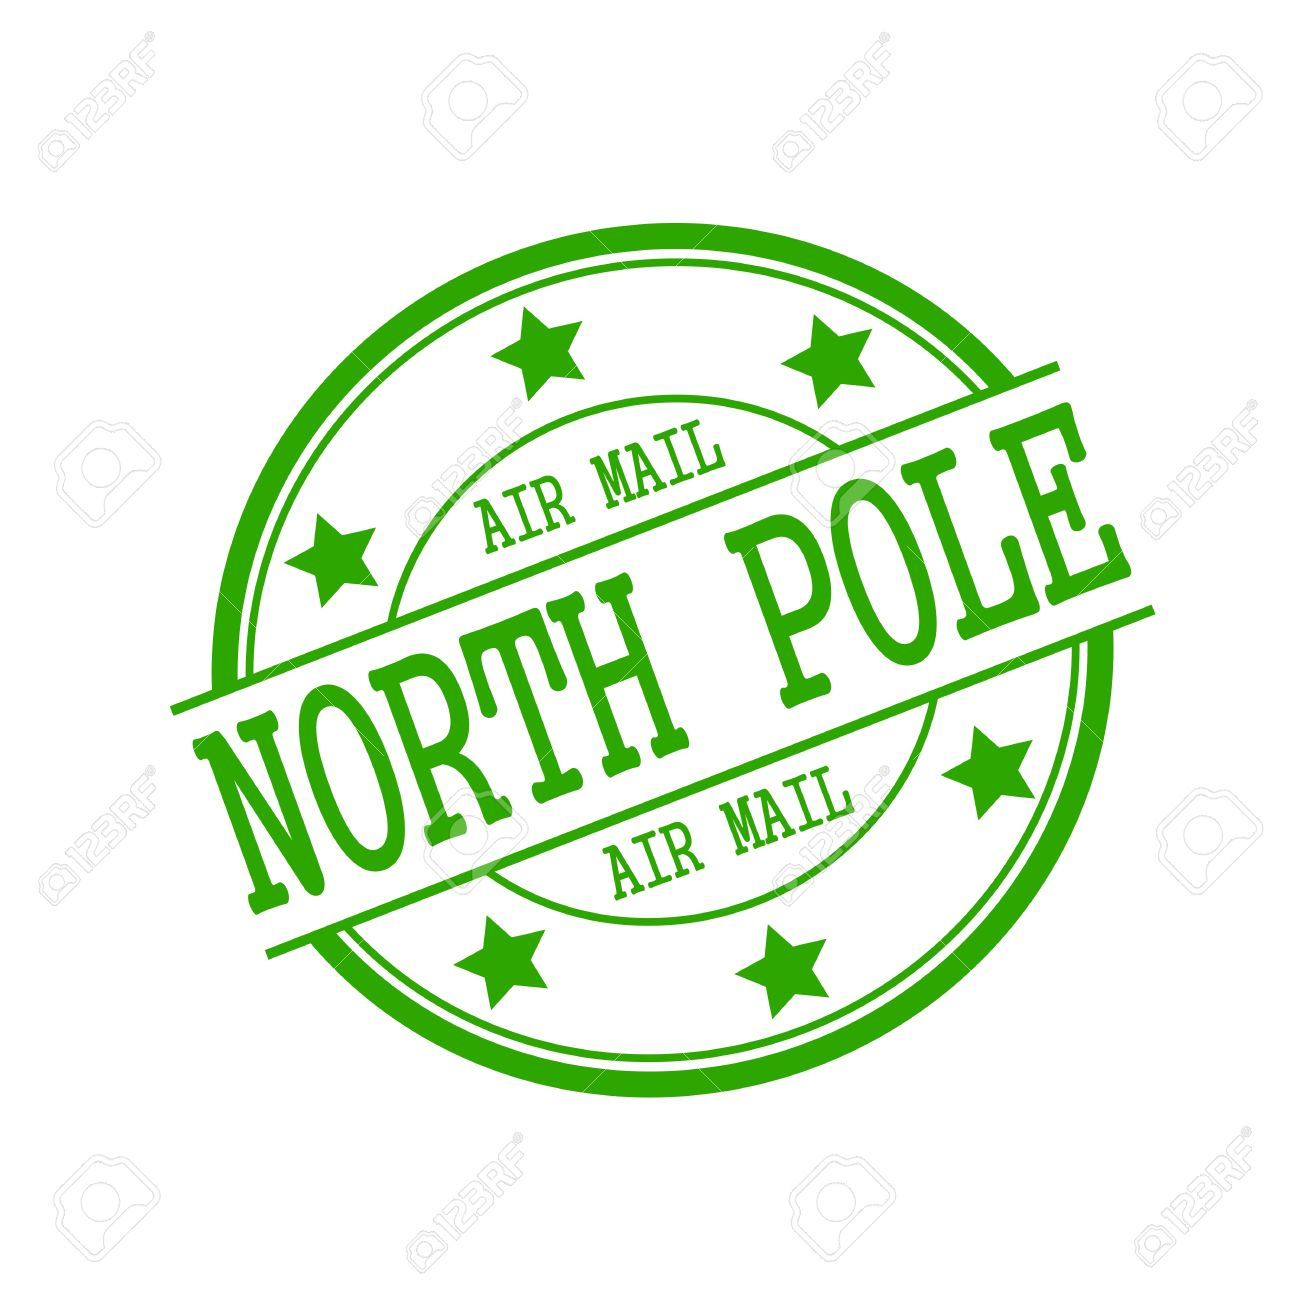 North Pole Air Mail Stamp Text On Green Circle A White Background And Star Stock